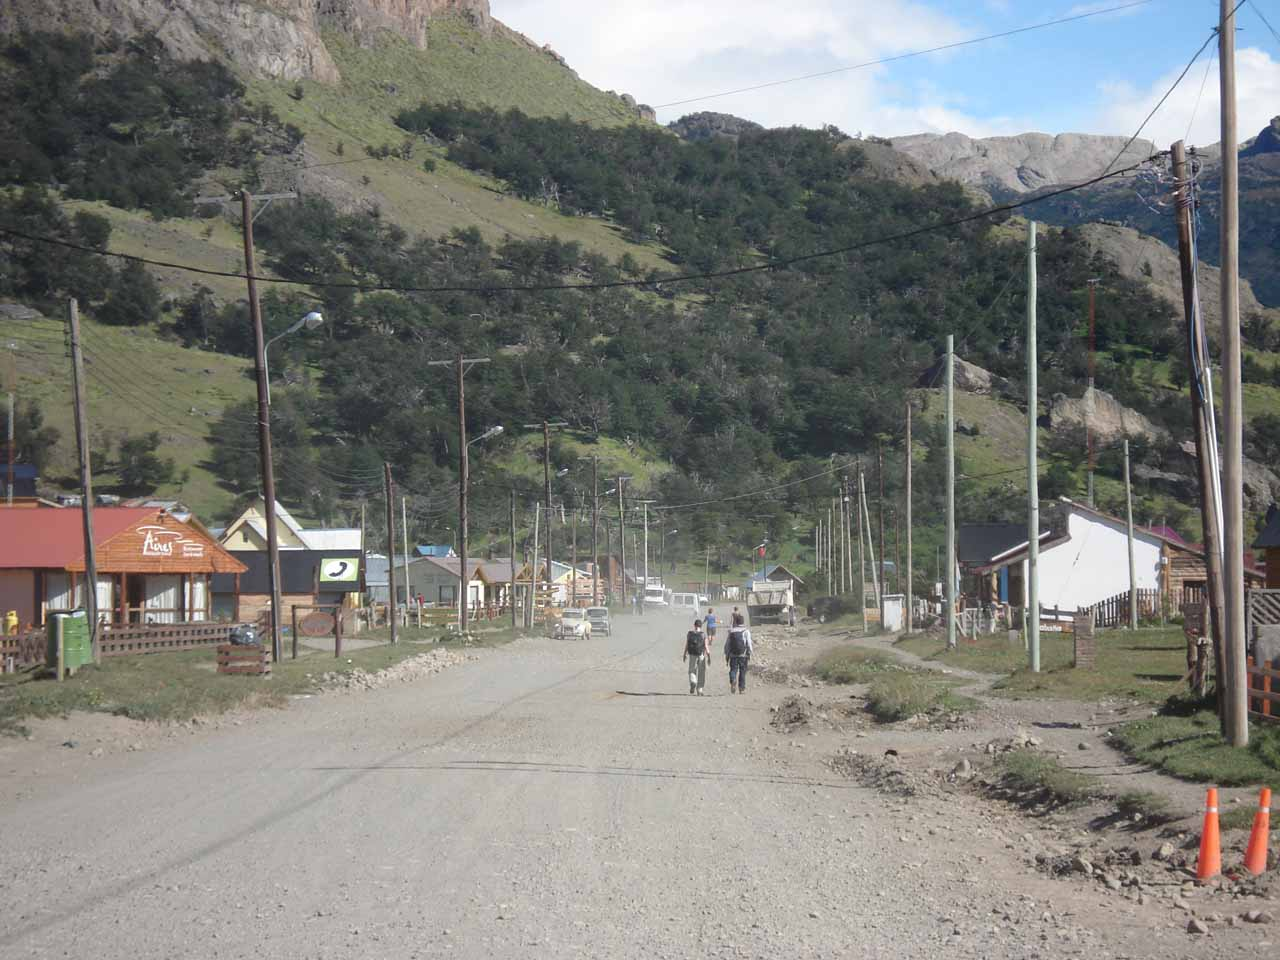 The Wild West feel of Avenida San Martin in El Chalten